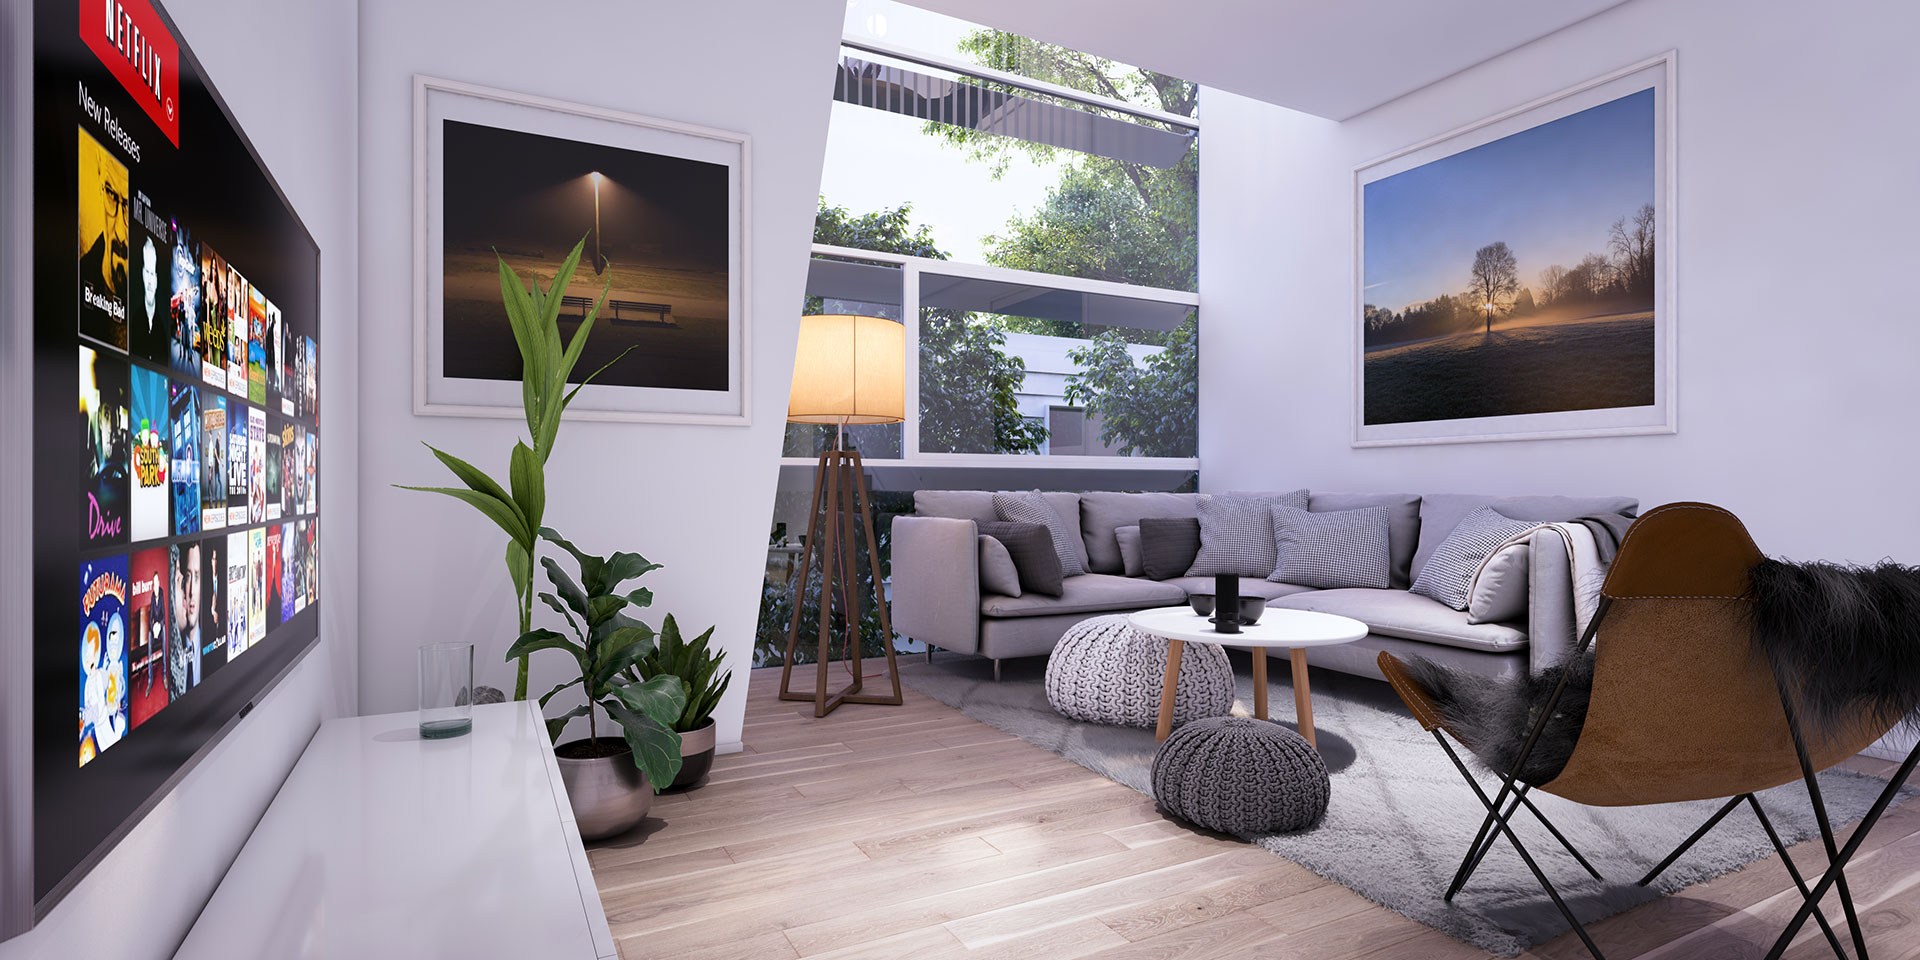 Turner's Dairy Townhouse Project - Unit 3 Living Room Render